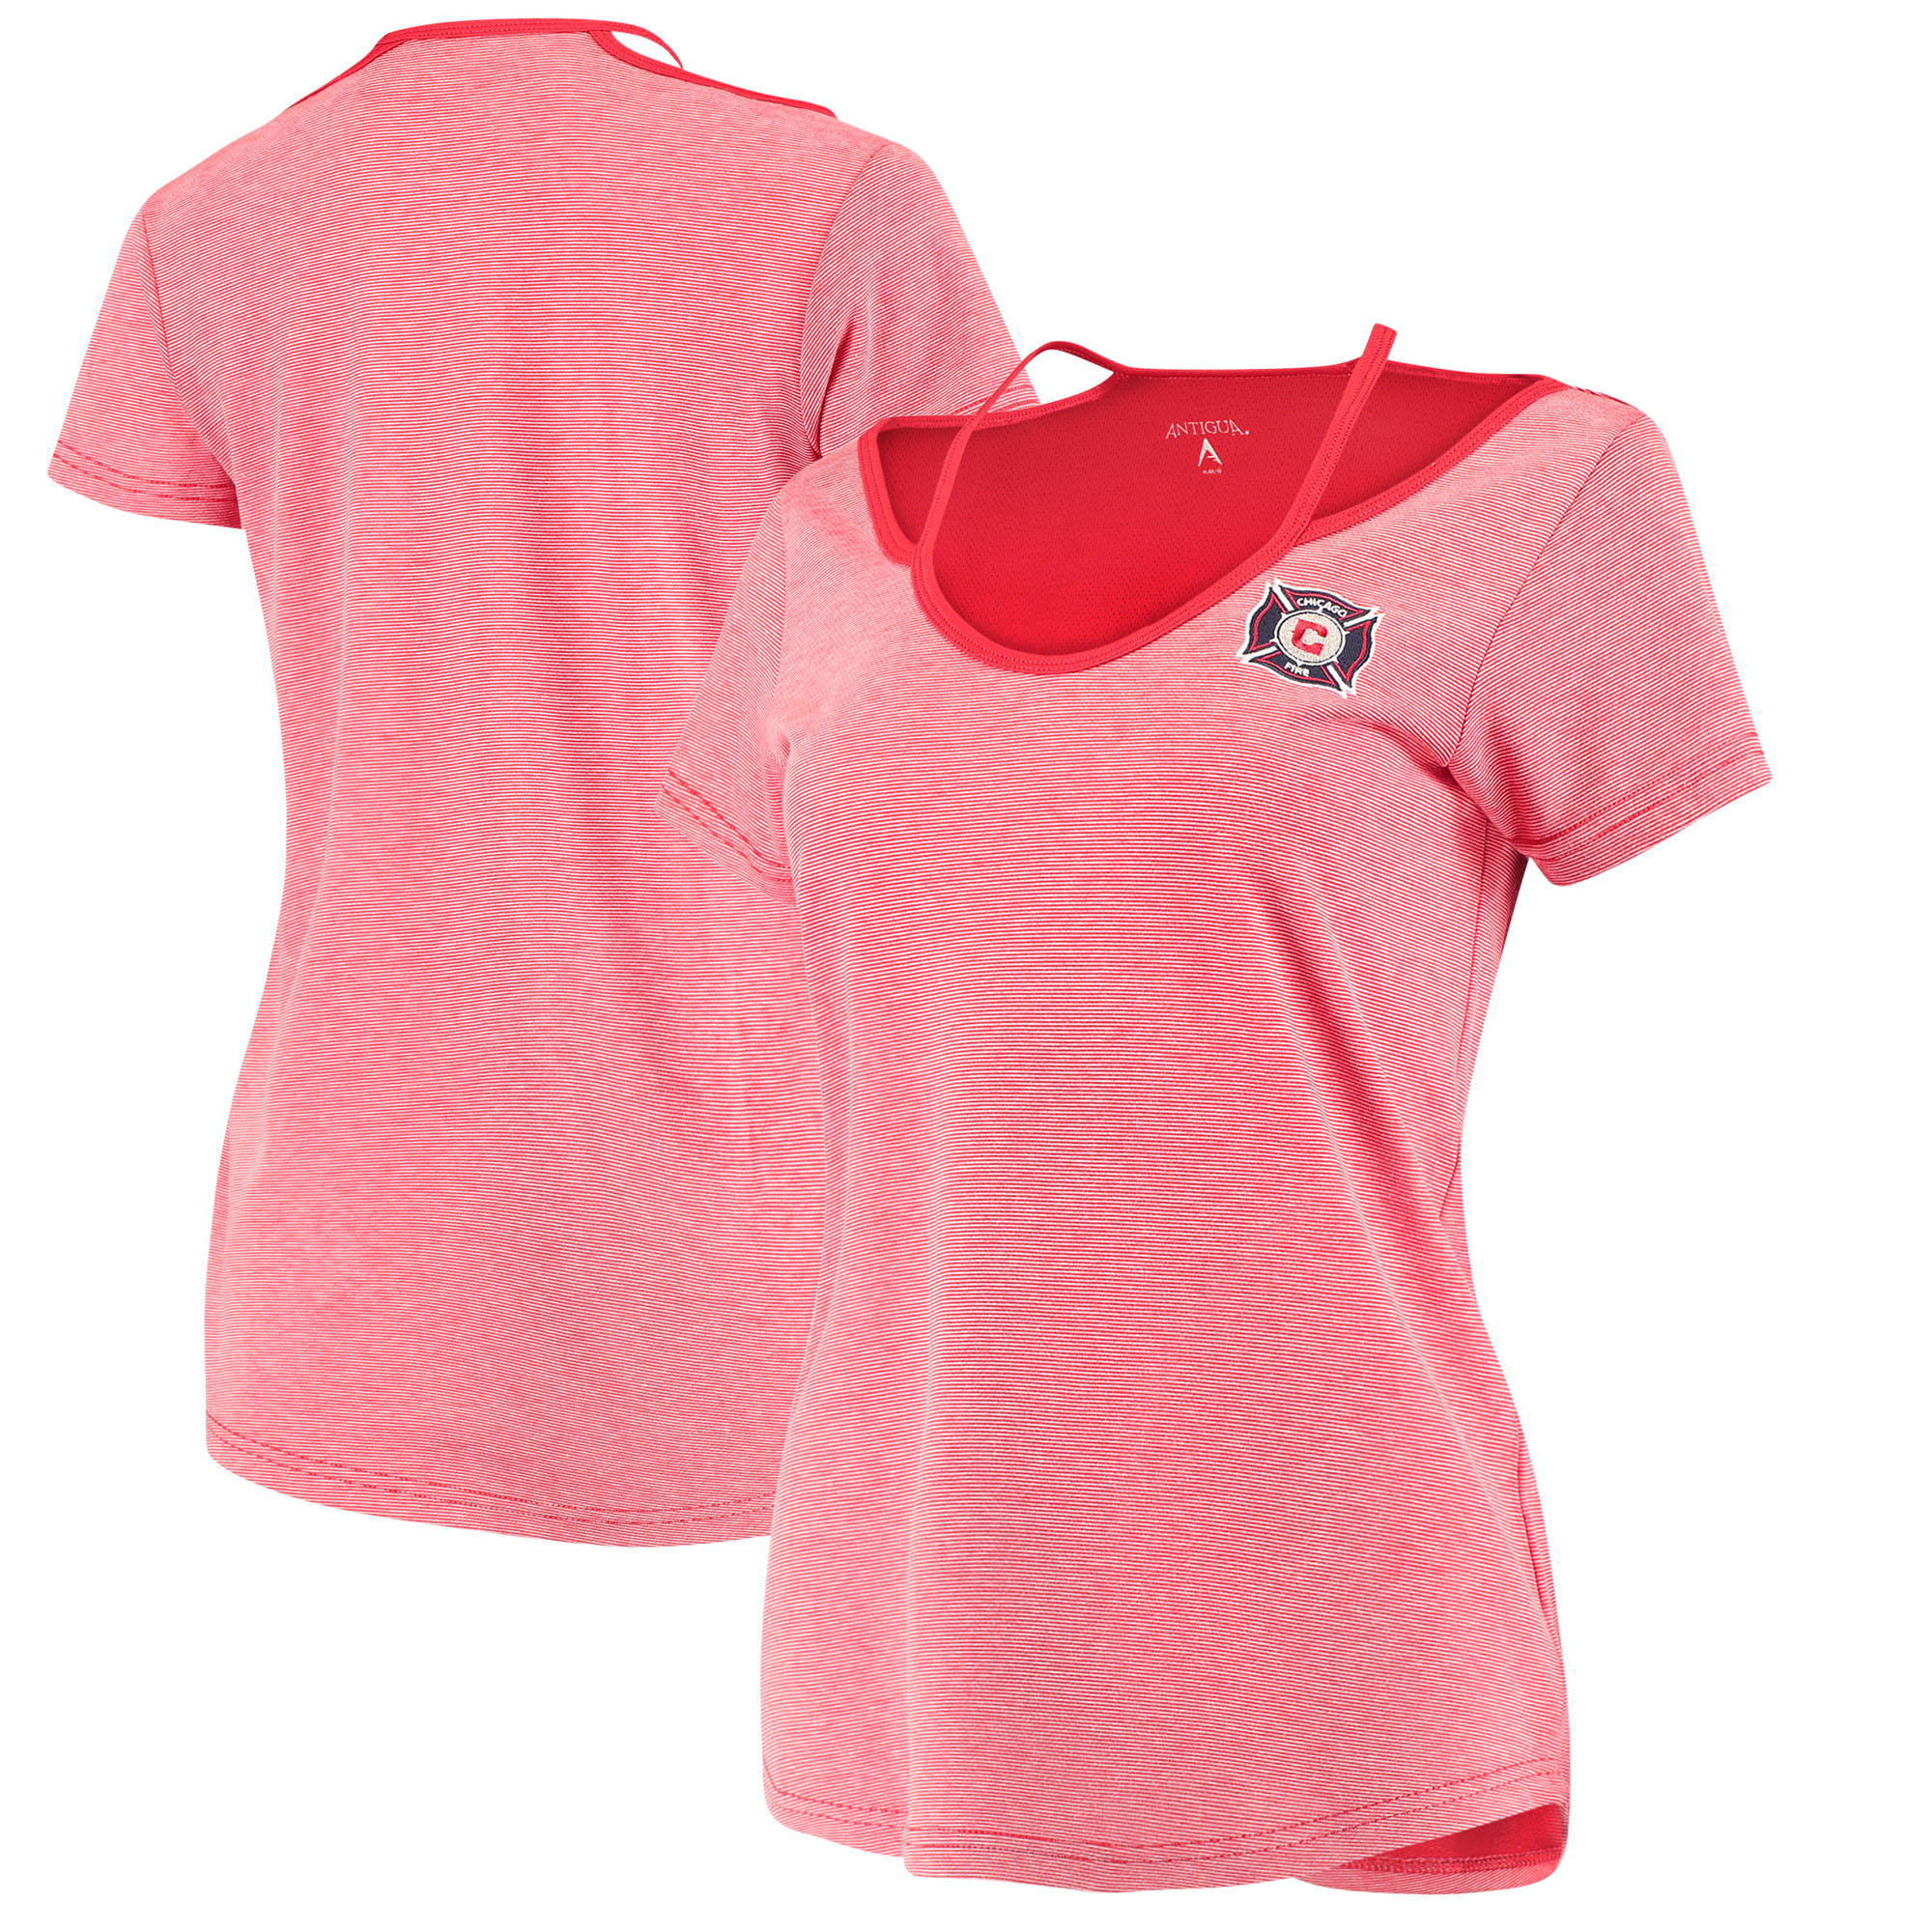 Chicago Fire Antigua Women's Hitter Cut Out T-Shirt - Red/Gray